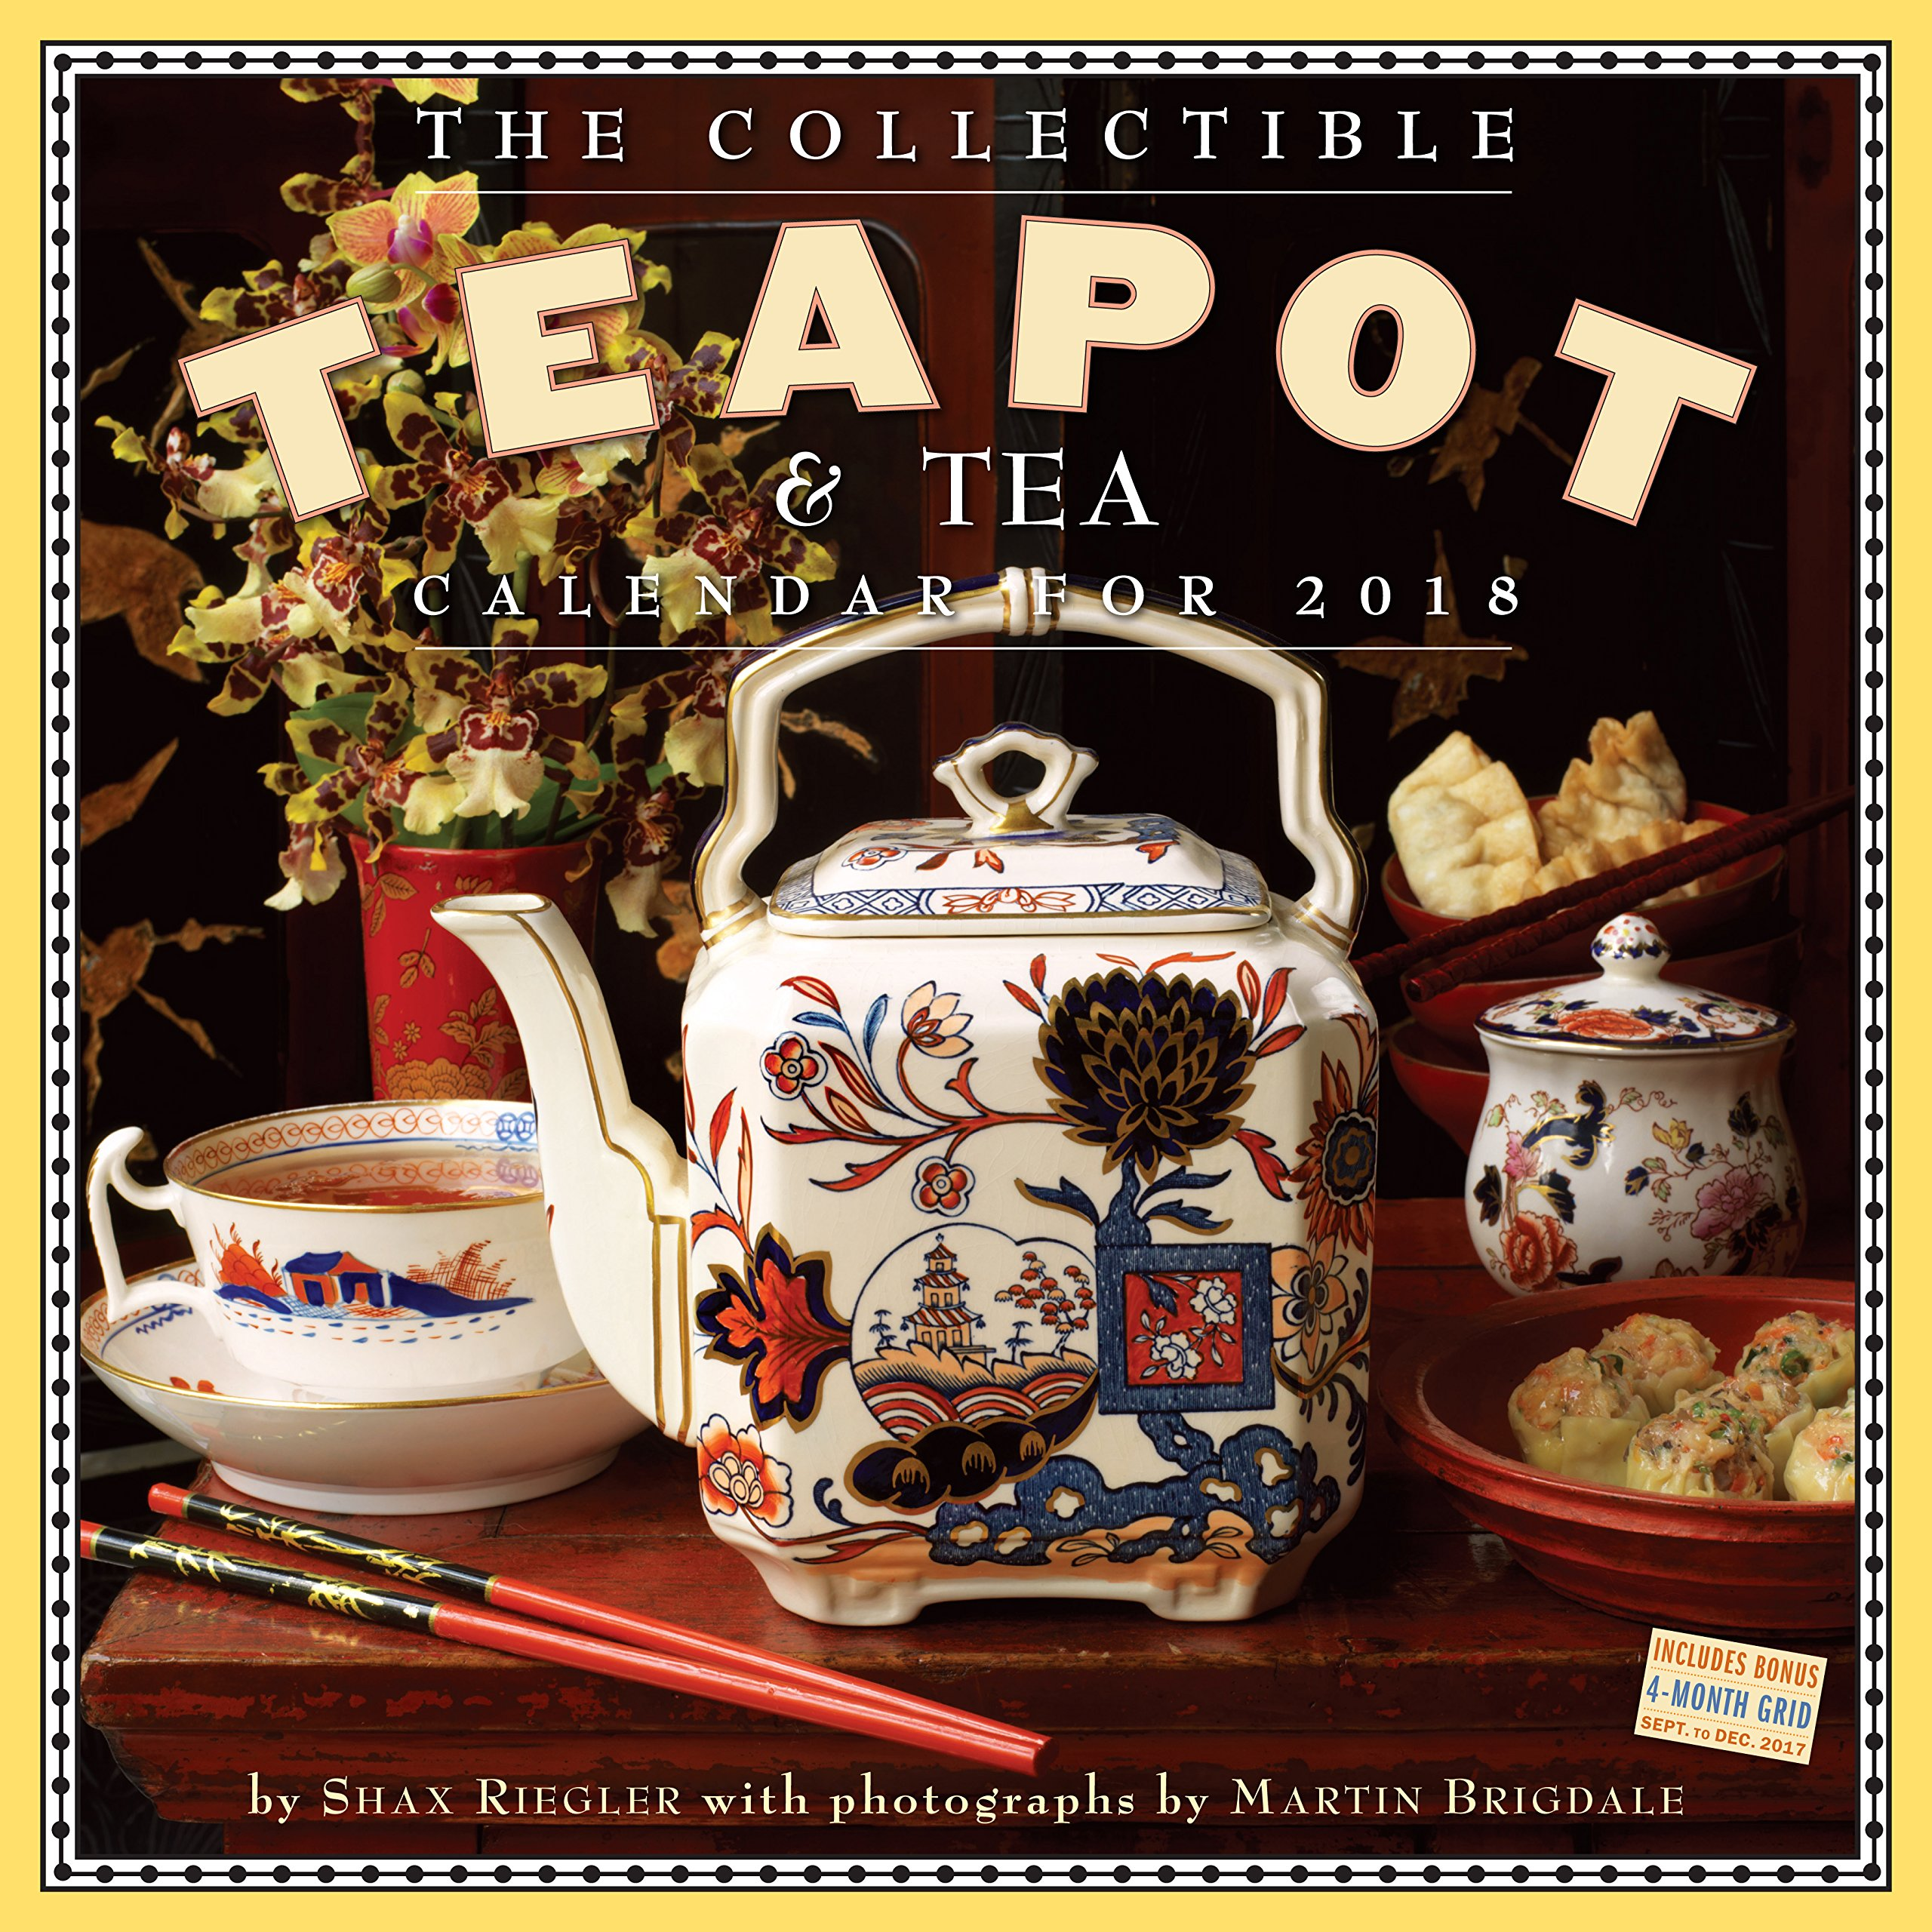 The Collectible Teapot & Tea Wall Calendar 2018 Calendar – Wall Calendar, July 27, 2017 Shax Riegler Workman Publishing Company 0761193995 Kitchenware